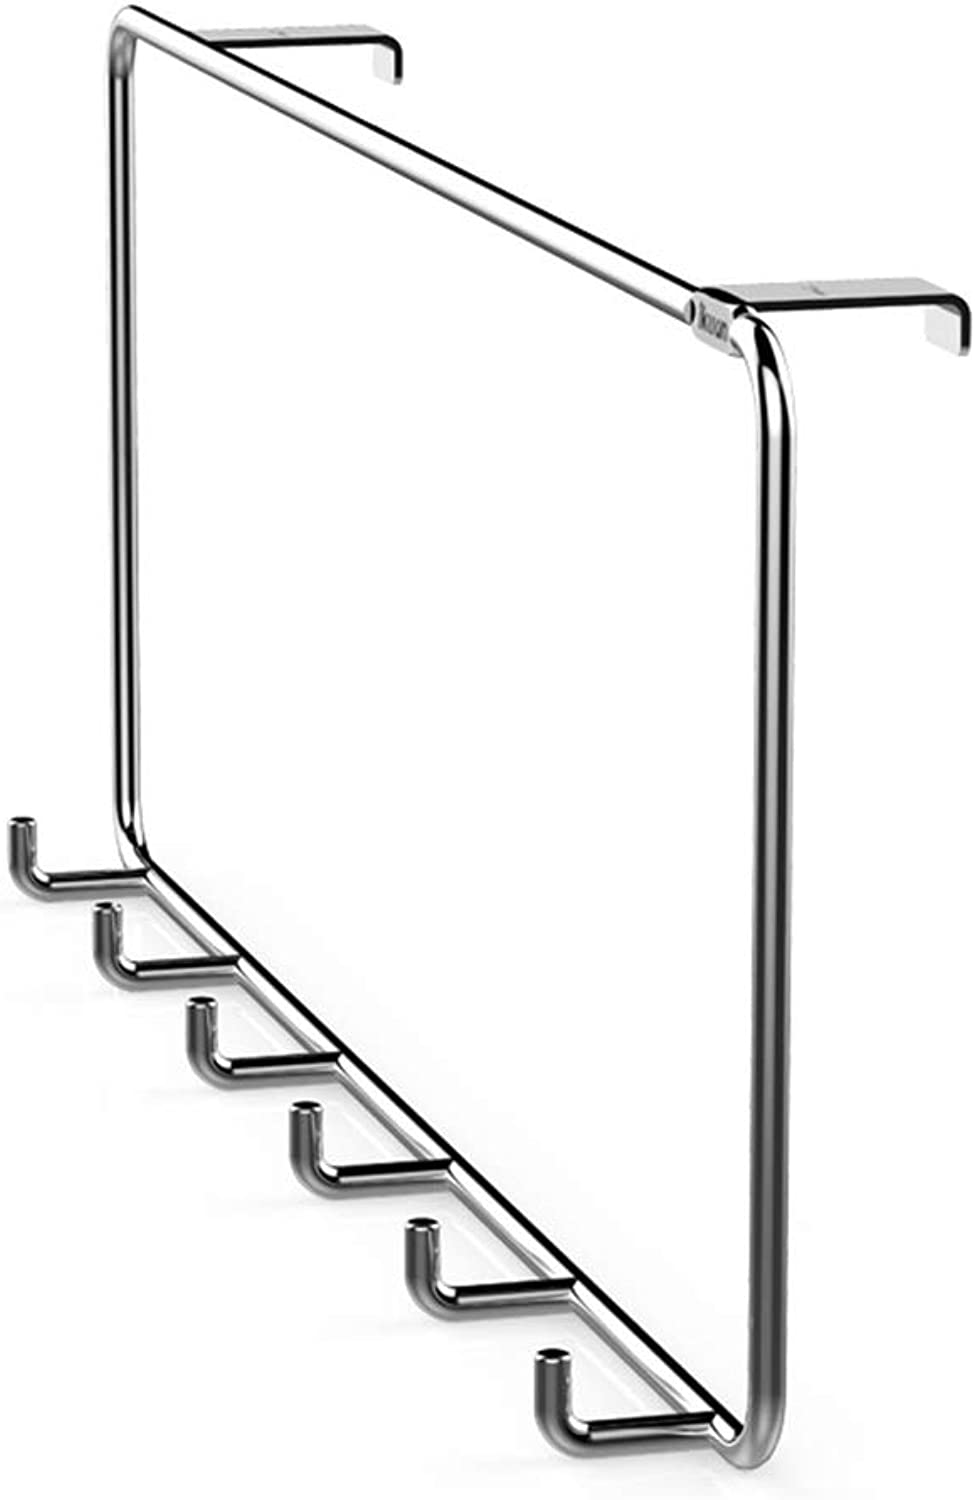 Coat Rack Stainless Steel Wall Mounted Over Door Hooks Heavy Duty Clothes Hat Holder (6 Hook)